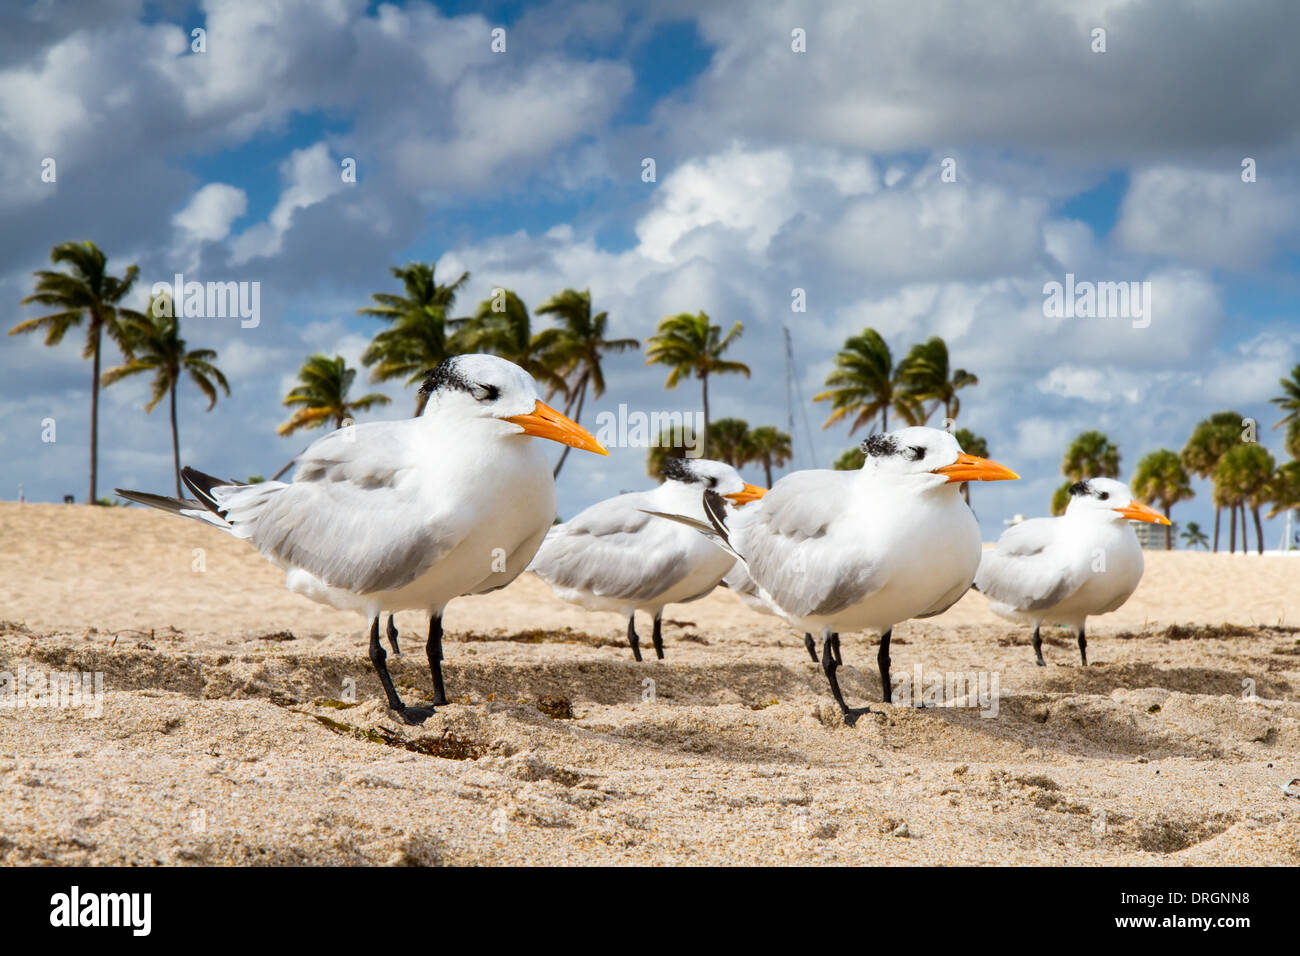 Four terns lined up on the beach, Fort Lauderdale, Florida Stock Photo